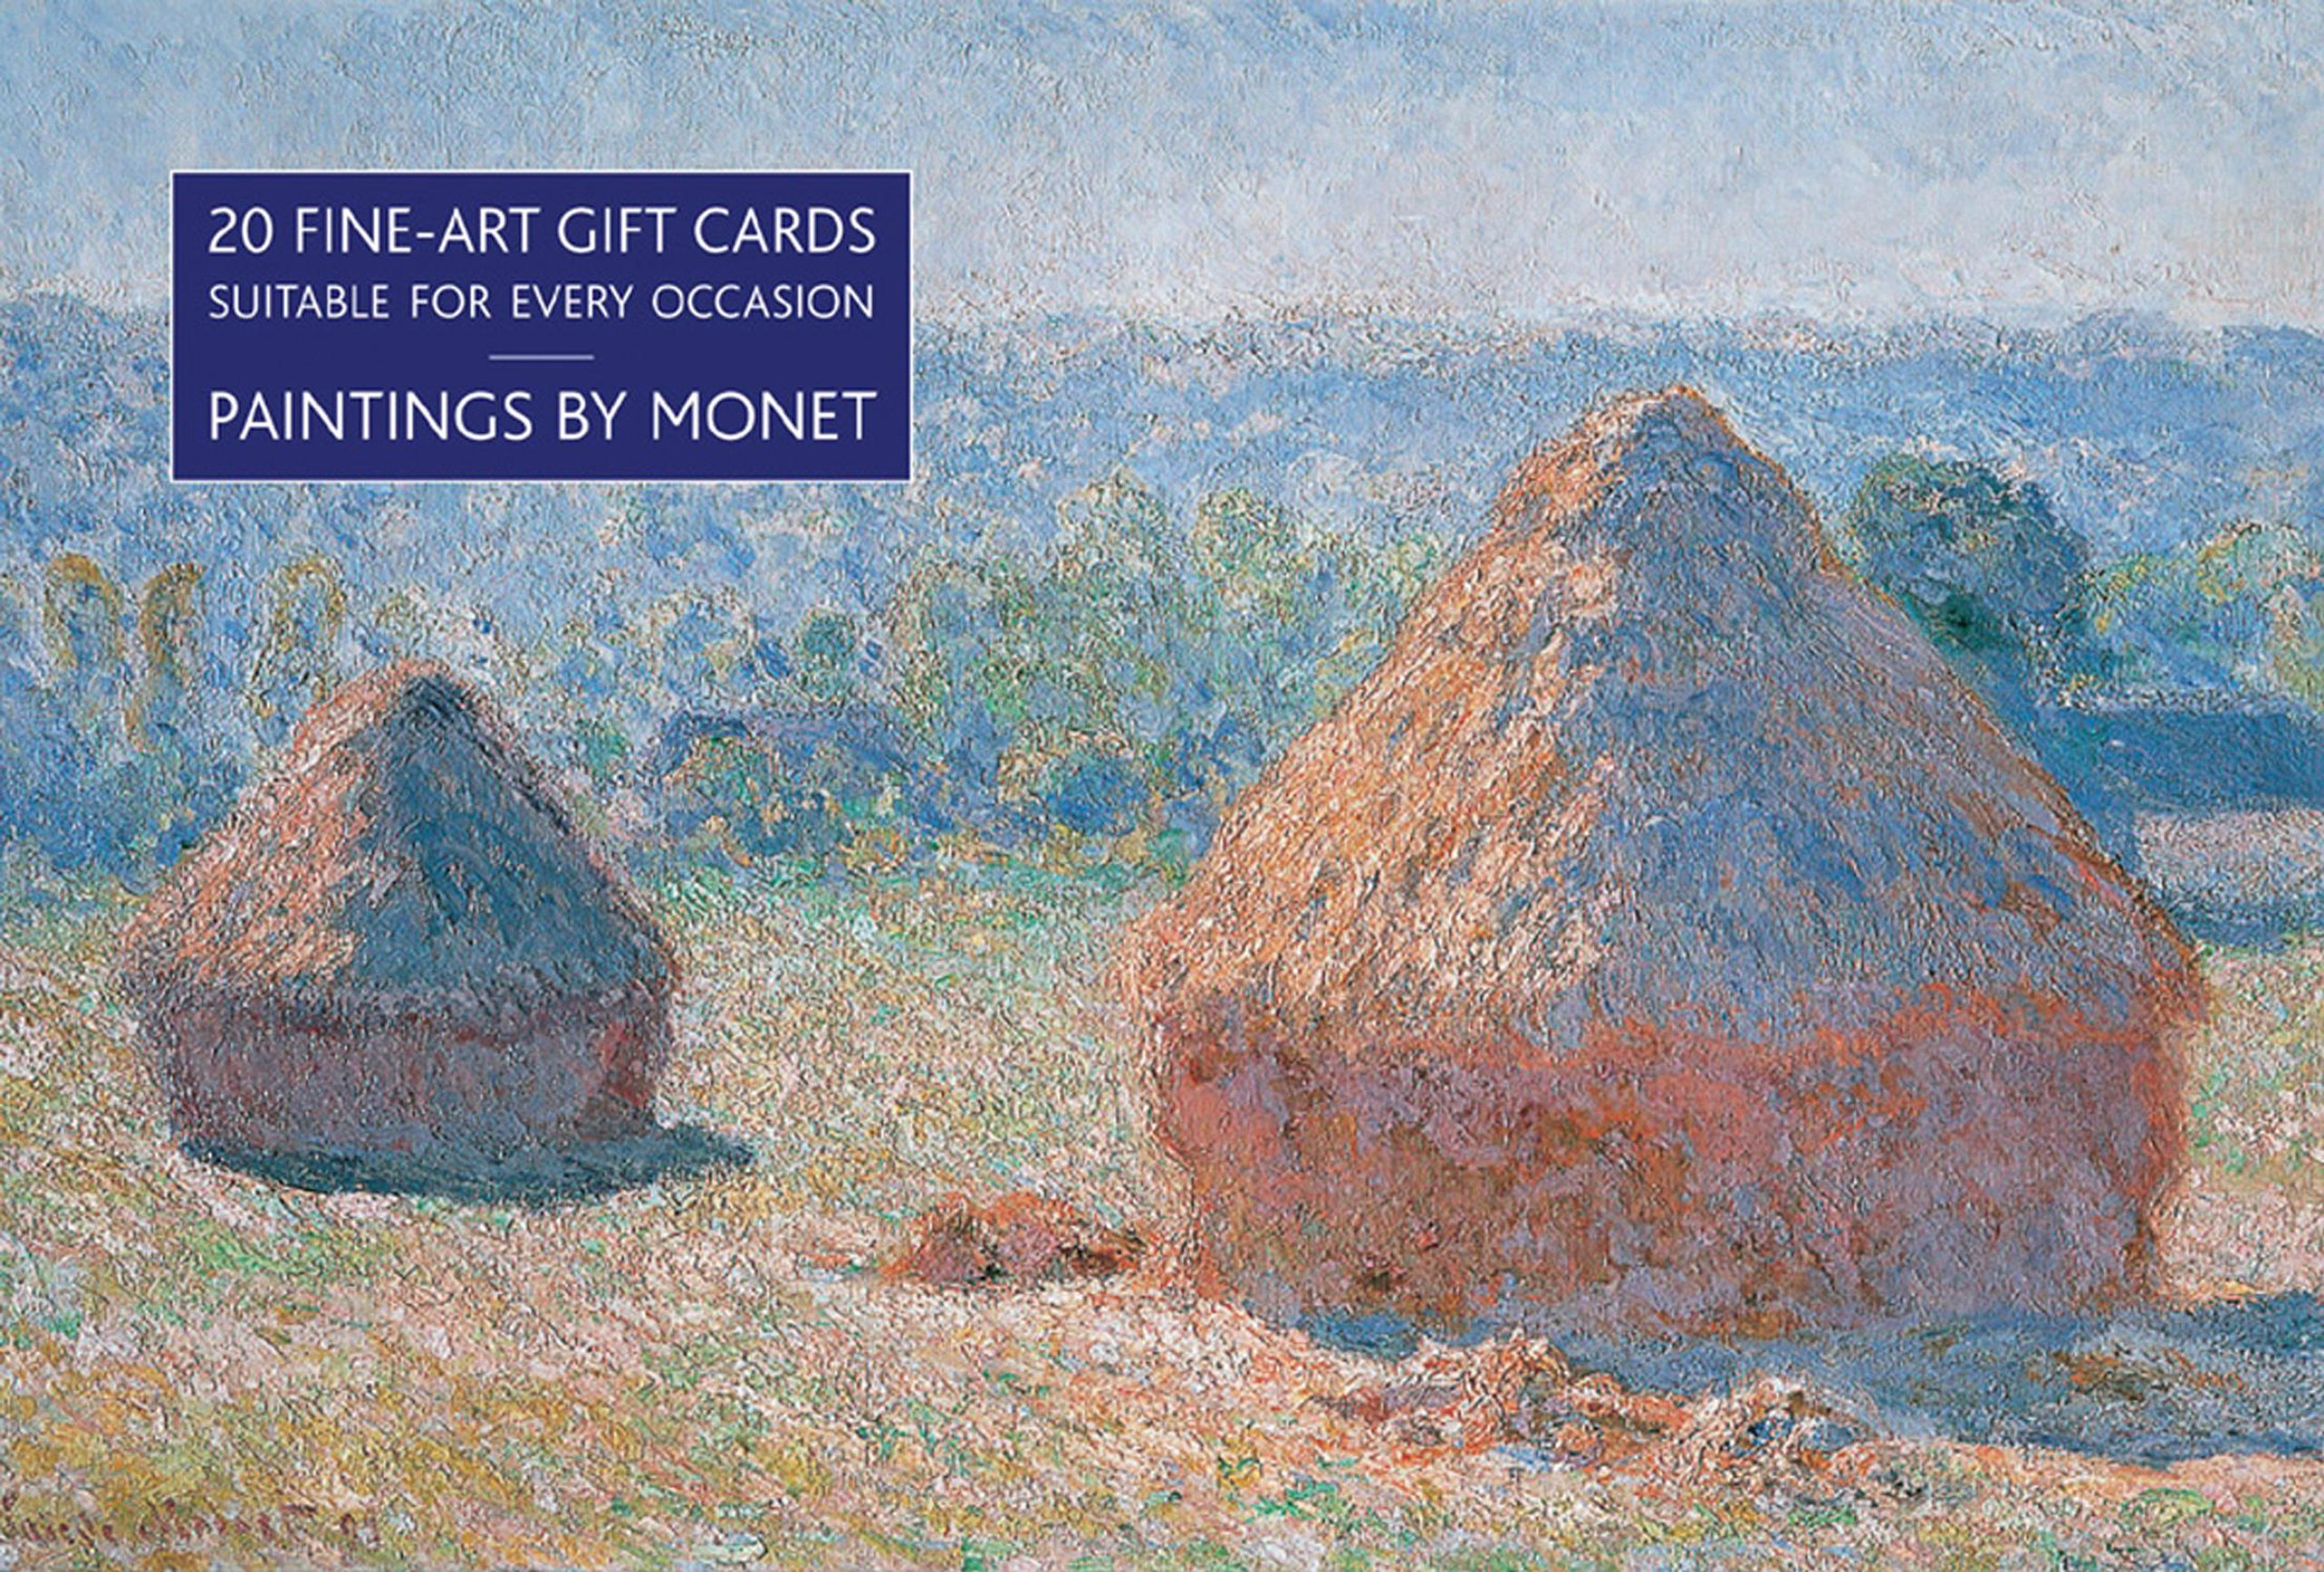 Card Box of 20 Notecards and Envelopes: Paintings by Monet: A delightful pack of high-quality fine-art gift cards and decorative envelopes